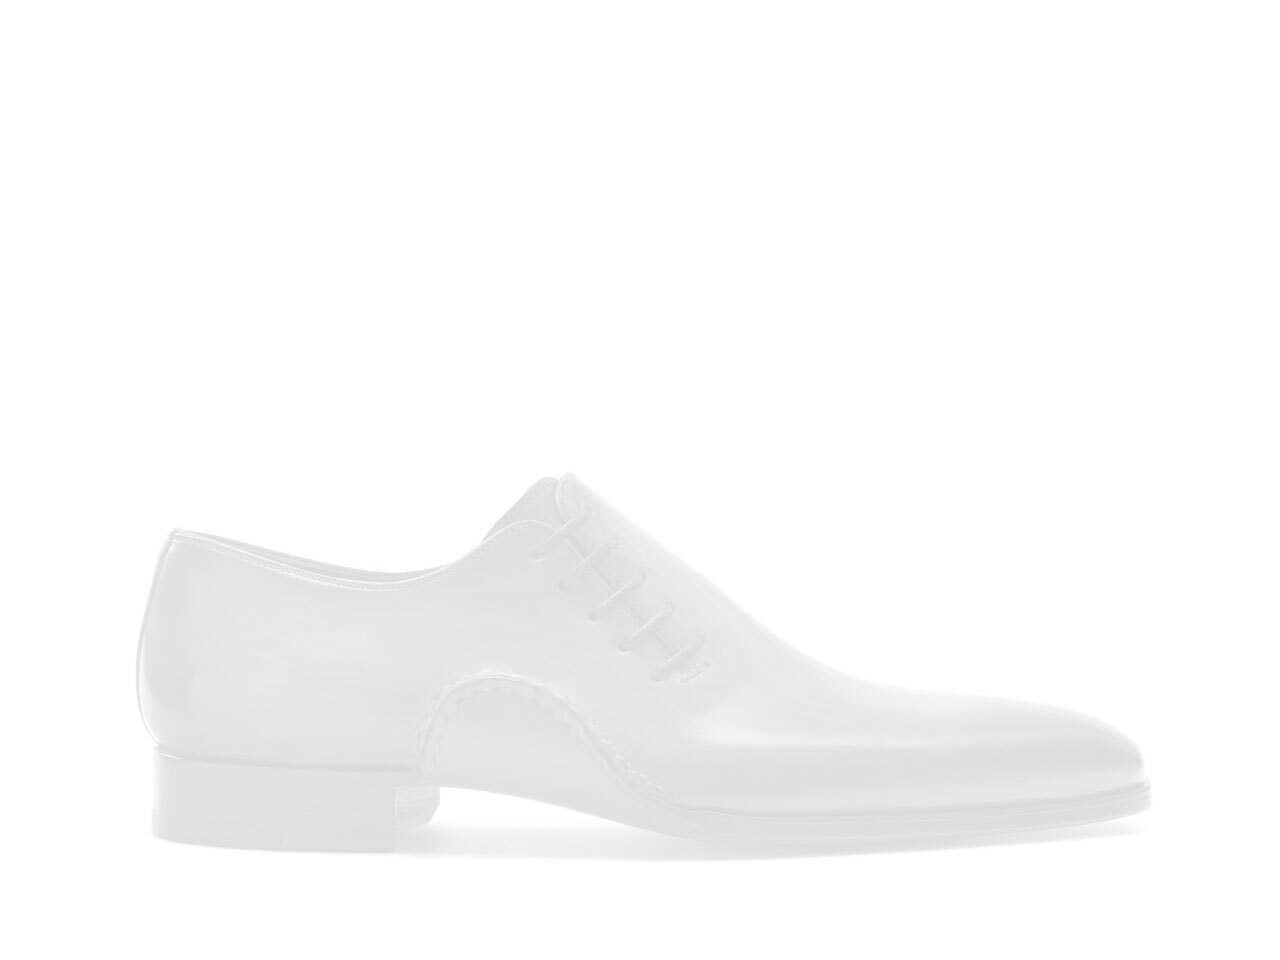 Side view of the Magnanni Lizandro Black Men's Sneakers